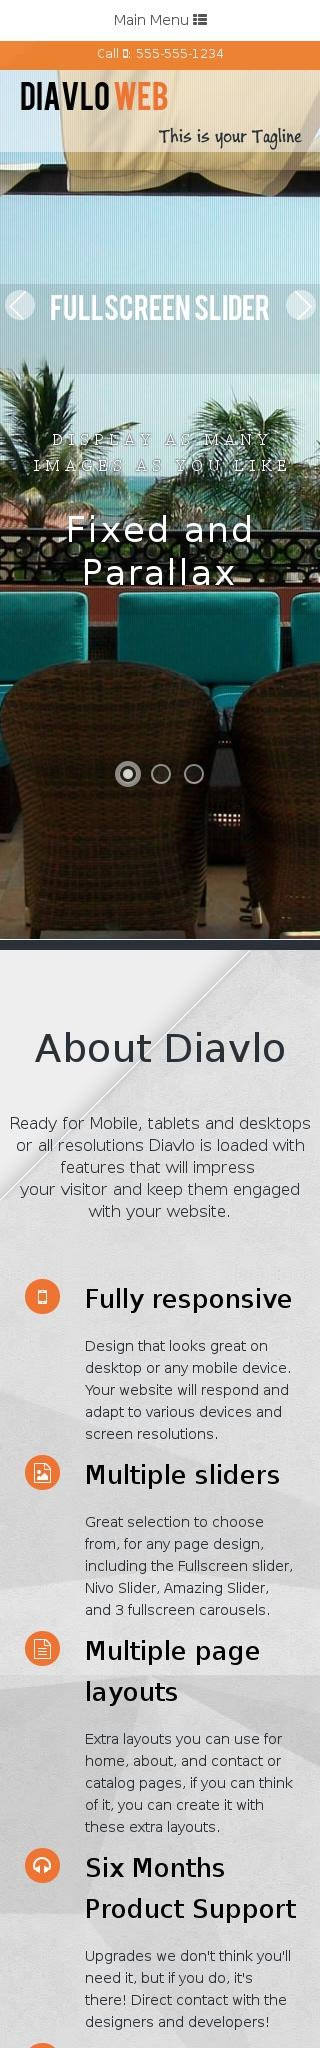 Mobile: Hotel Web Template